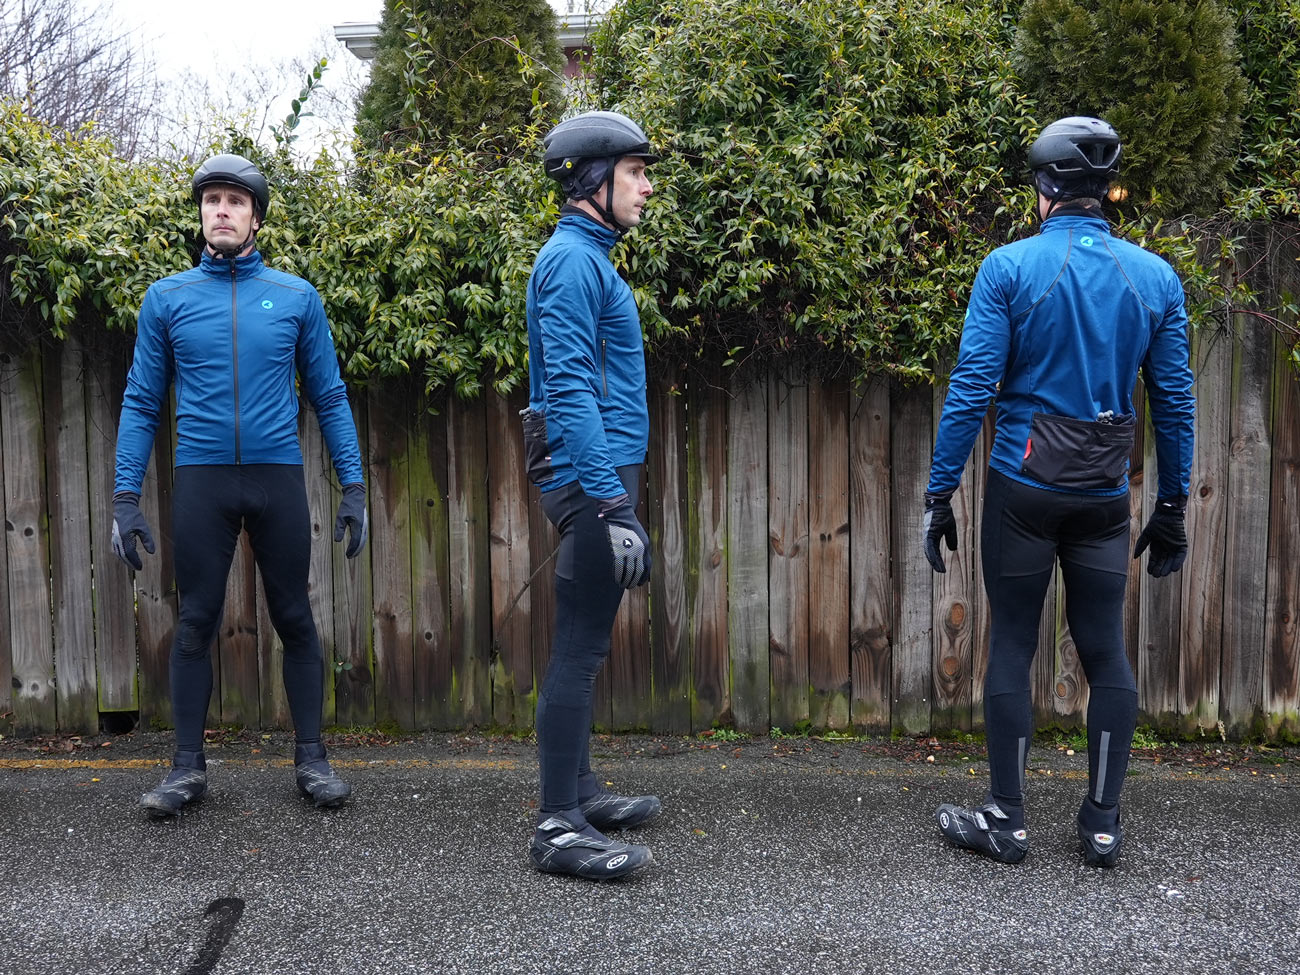 pactimo winter cycling kit photos of thermal bibs and jacket with long sleeve jersey